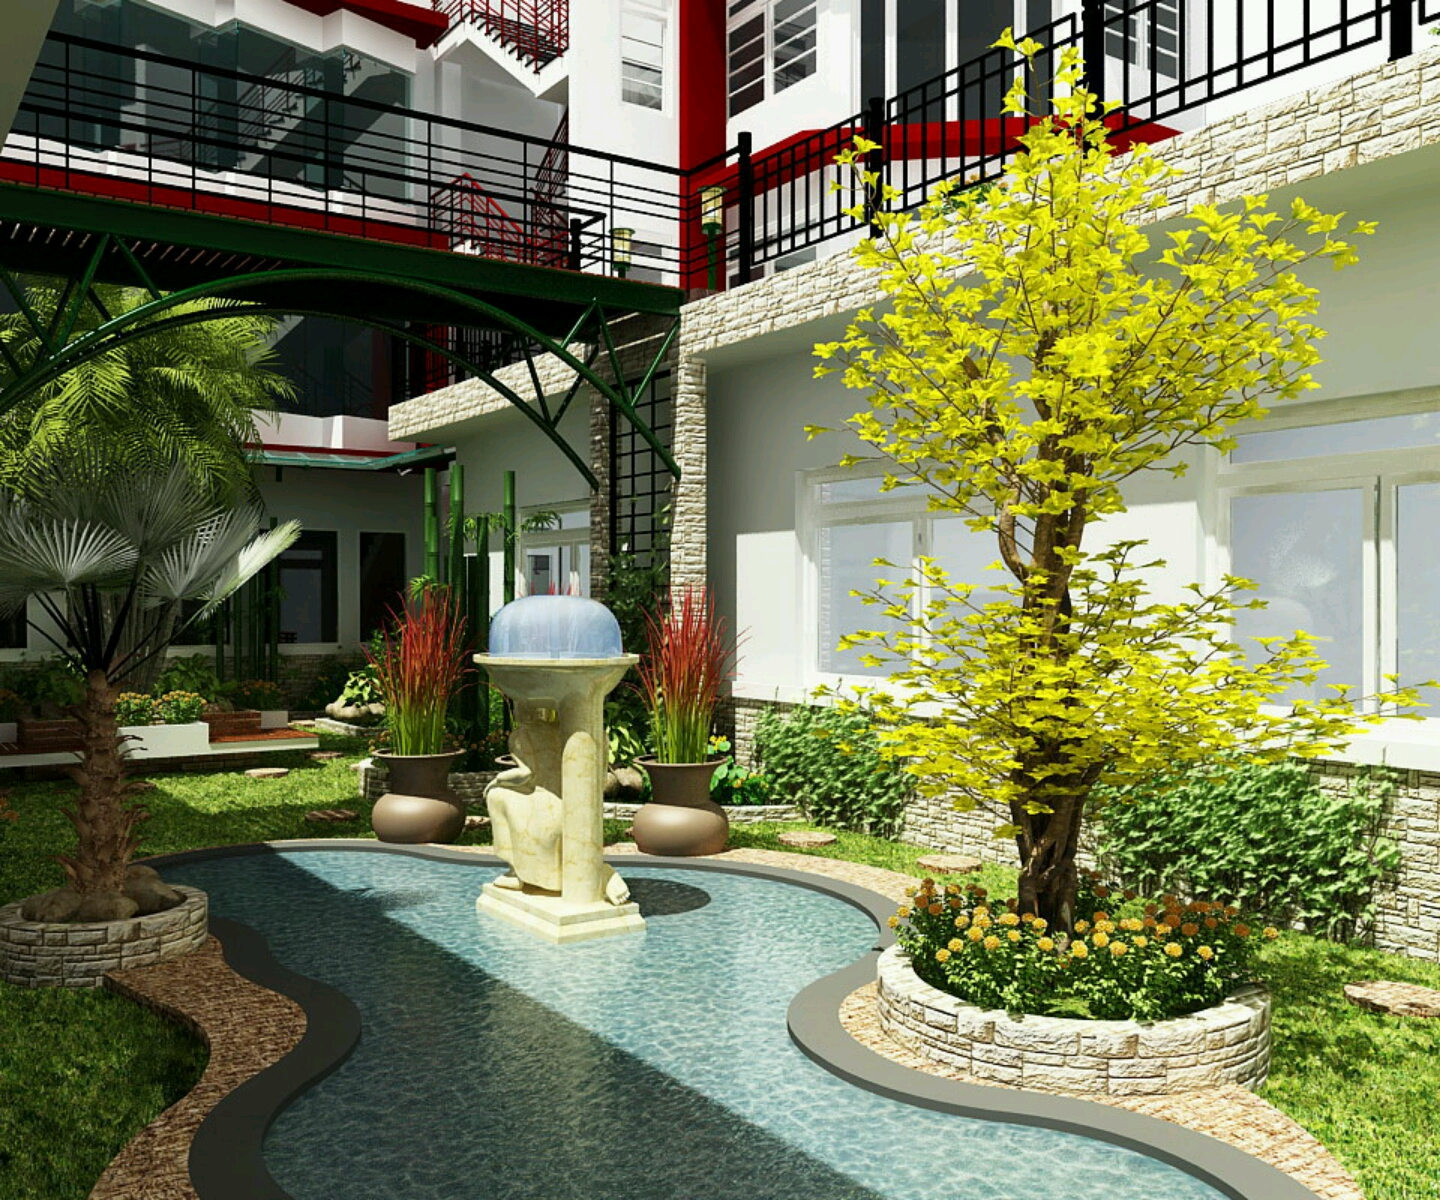 Modern garden design ideas 10 for Modern garden design ideas